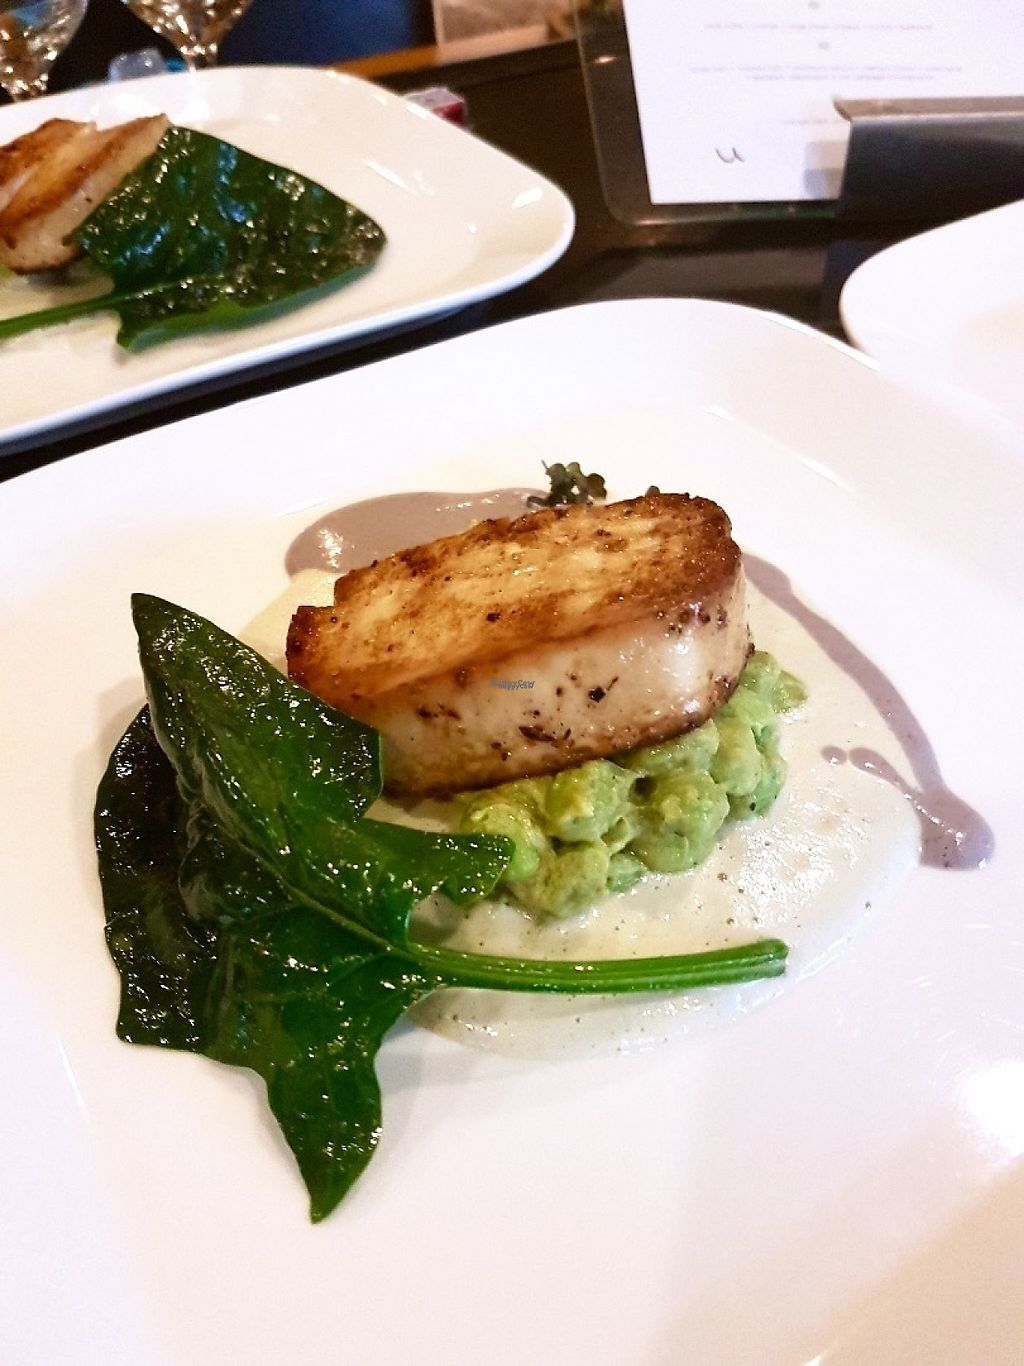 "Photo of Vegan Supper Club Bangkok  by <a href=""/members/profile/VeganCrush"">VeganCrush</a> <br/>Tofu Steak auf Edamame and Cashew Cream and Blueberry Cheese Sauce.  <br/> March 23, 2017  - <a href='/contact/abuse/image/75708/239899'>Report</a>"